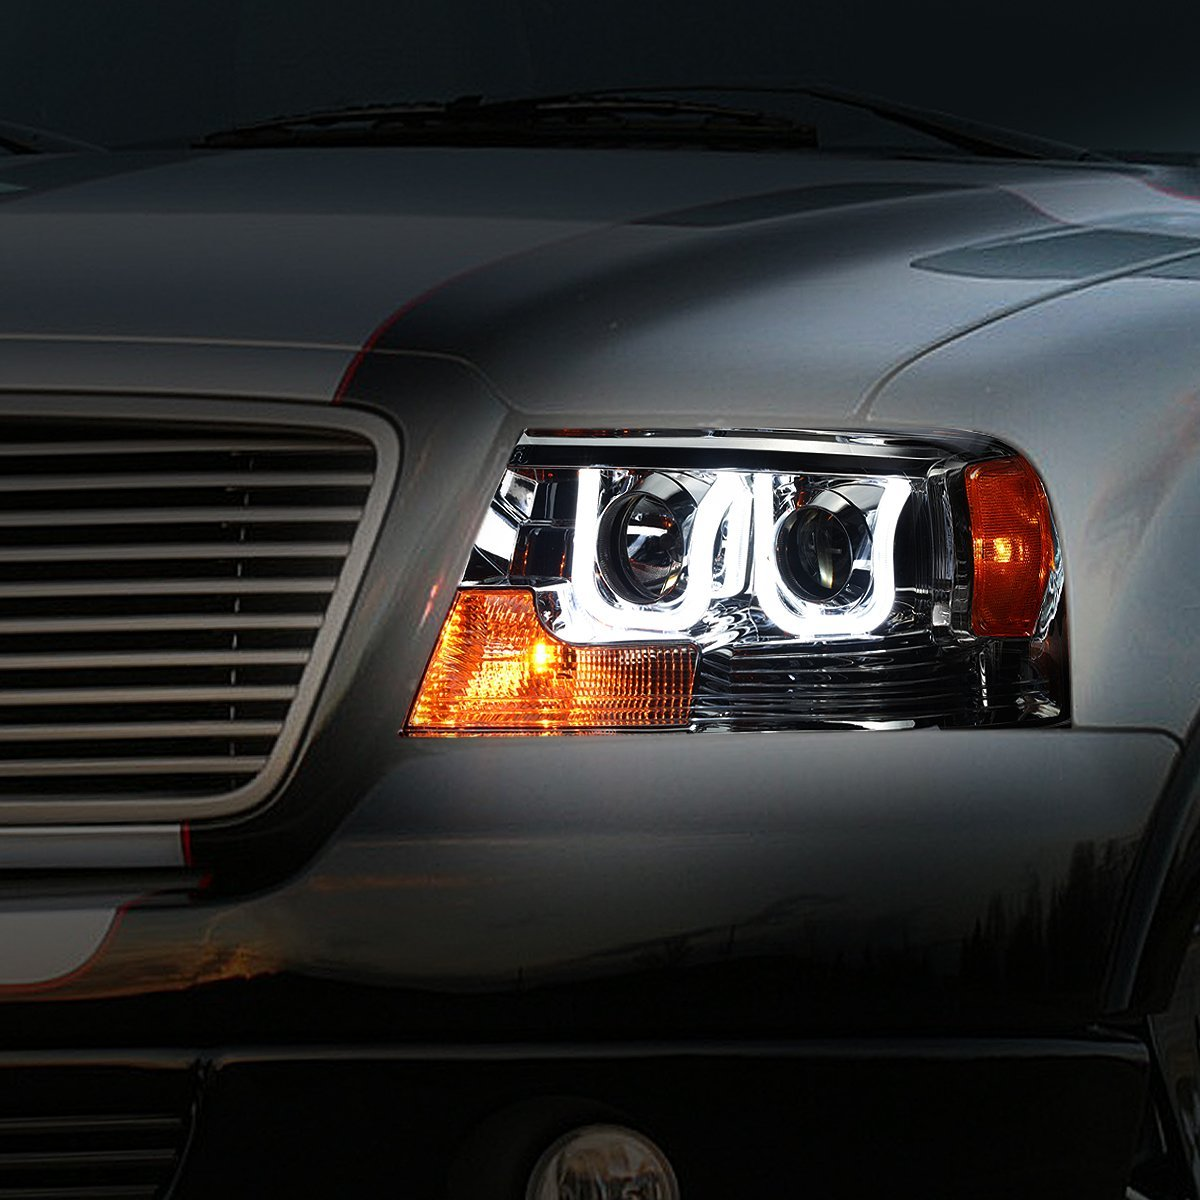 04 08 ford f150 06 08 lincoln mark lt 3d halo projector headlights smoked. Black Bedroom Furniture Sets. Home Design Ideas